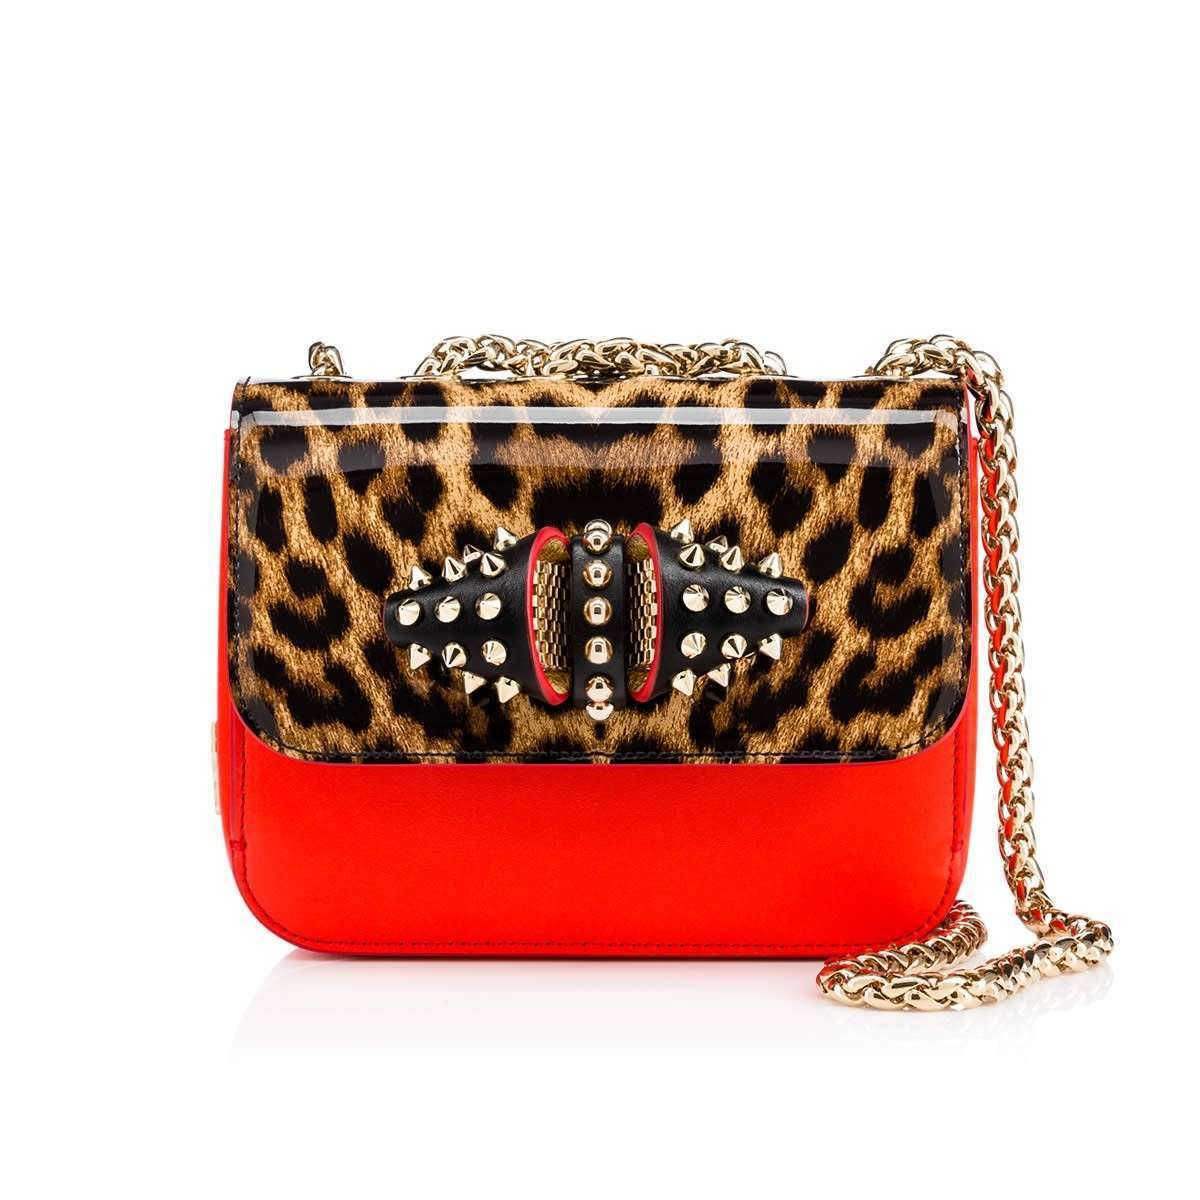 Mini bag animalier Christian Louboutin